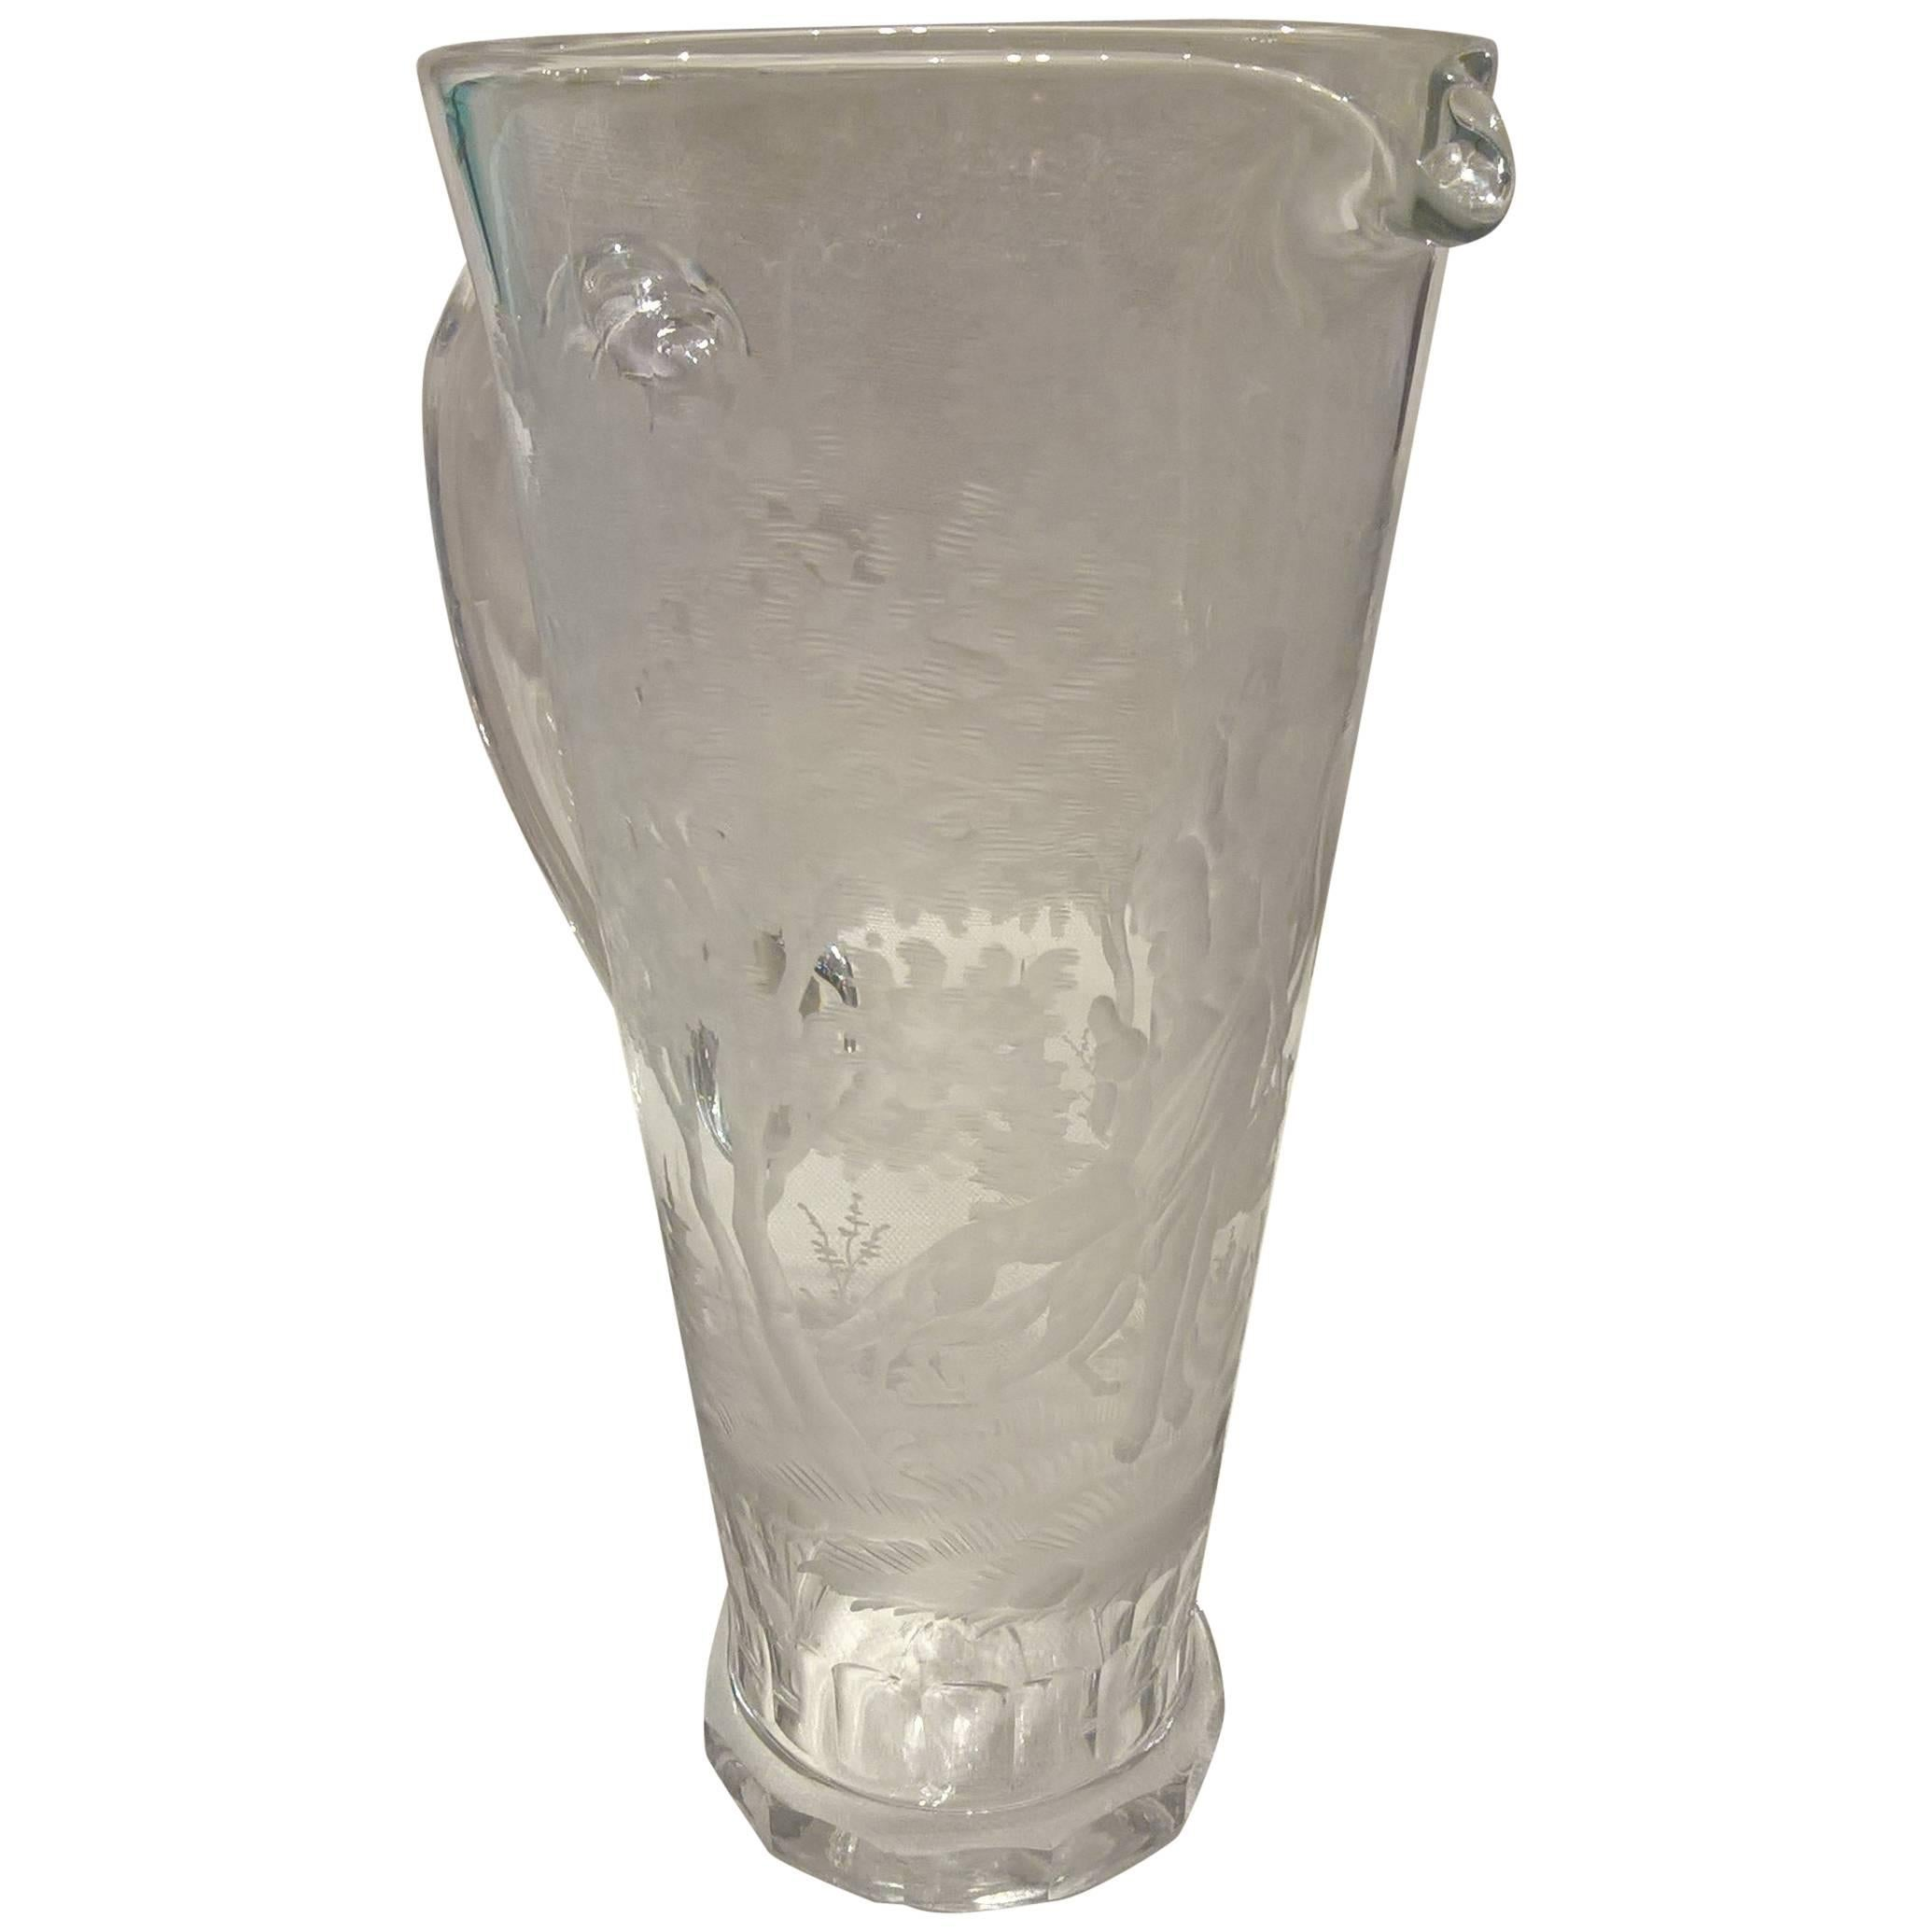 Moser Art Deco Glass Pitcher Hand-Engraved with Diana and Wolfs in Clear Crystal